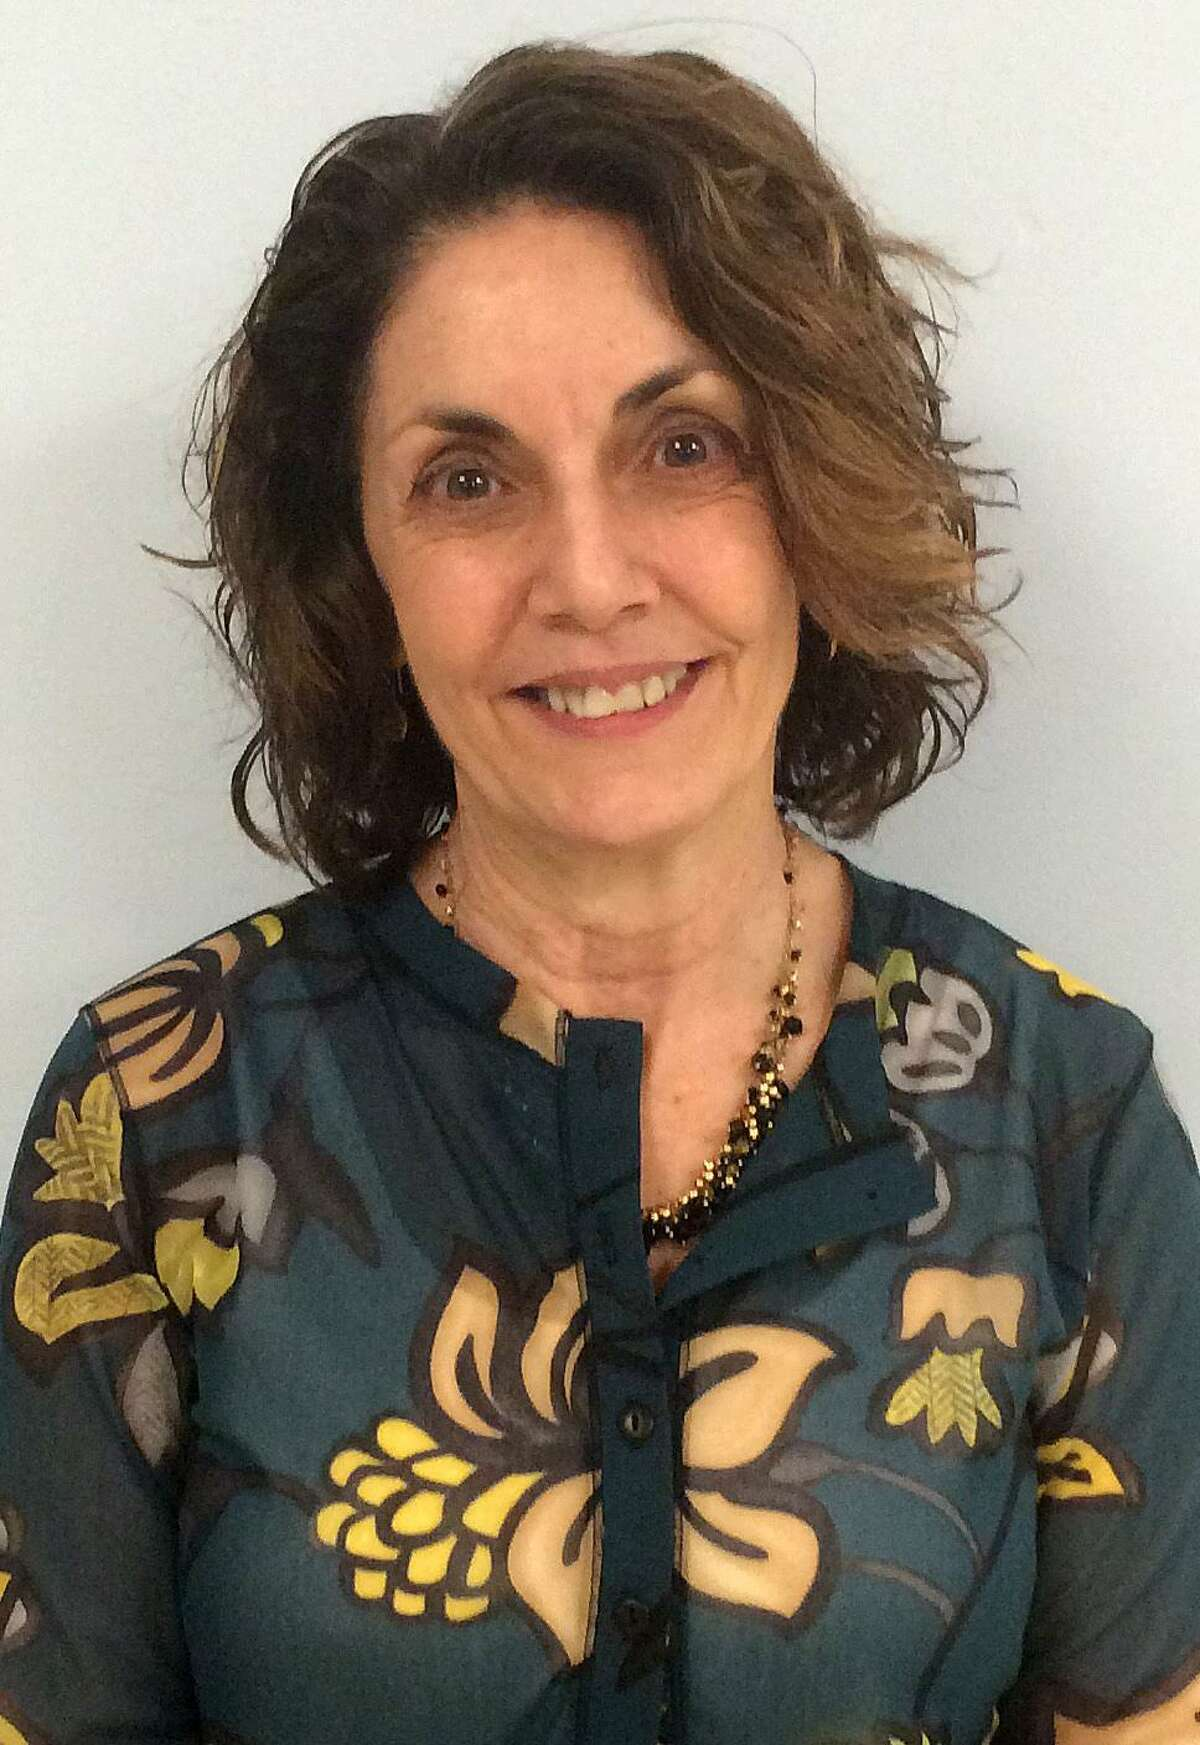 Mary Lou DiBella, the prinicipal of an elementary school in Newtonville, Mass., has been hired as the new principal of Kings Highway Elementary School as of this summer.